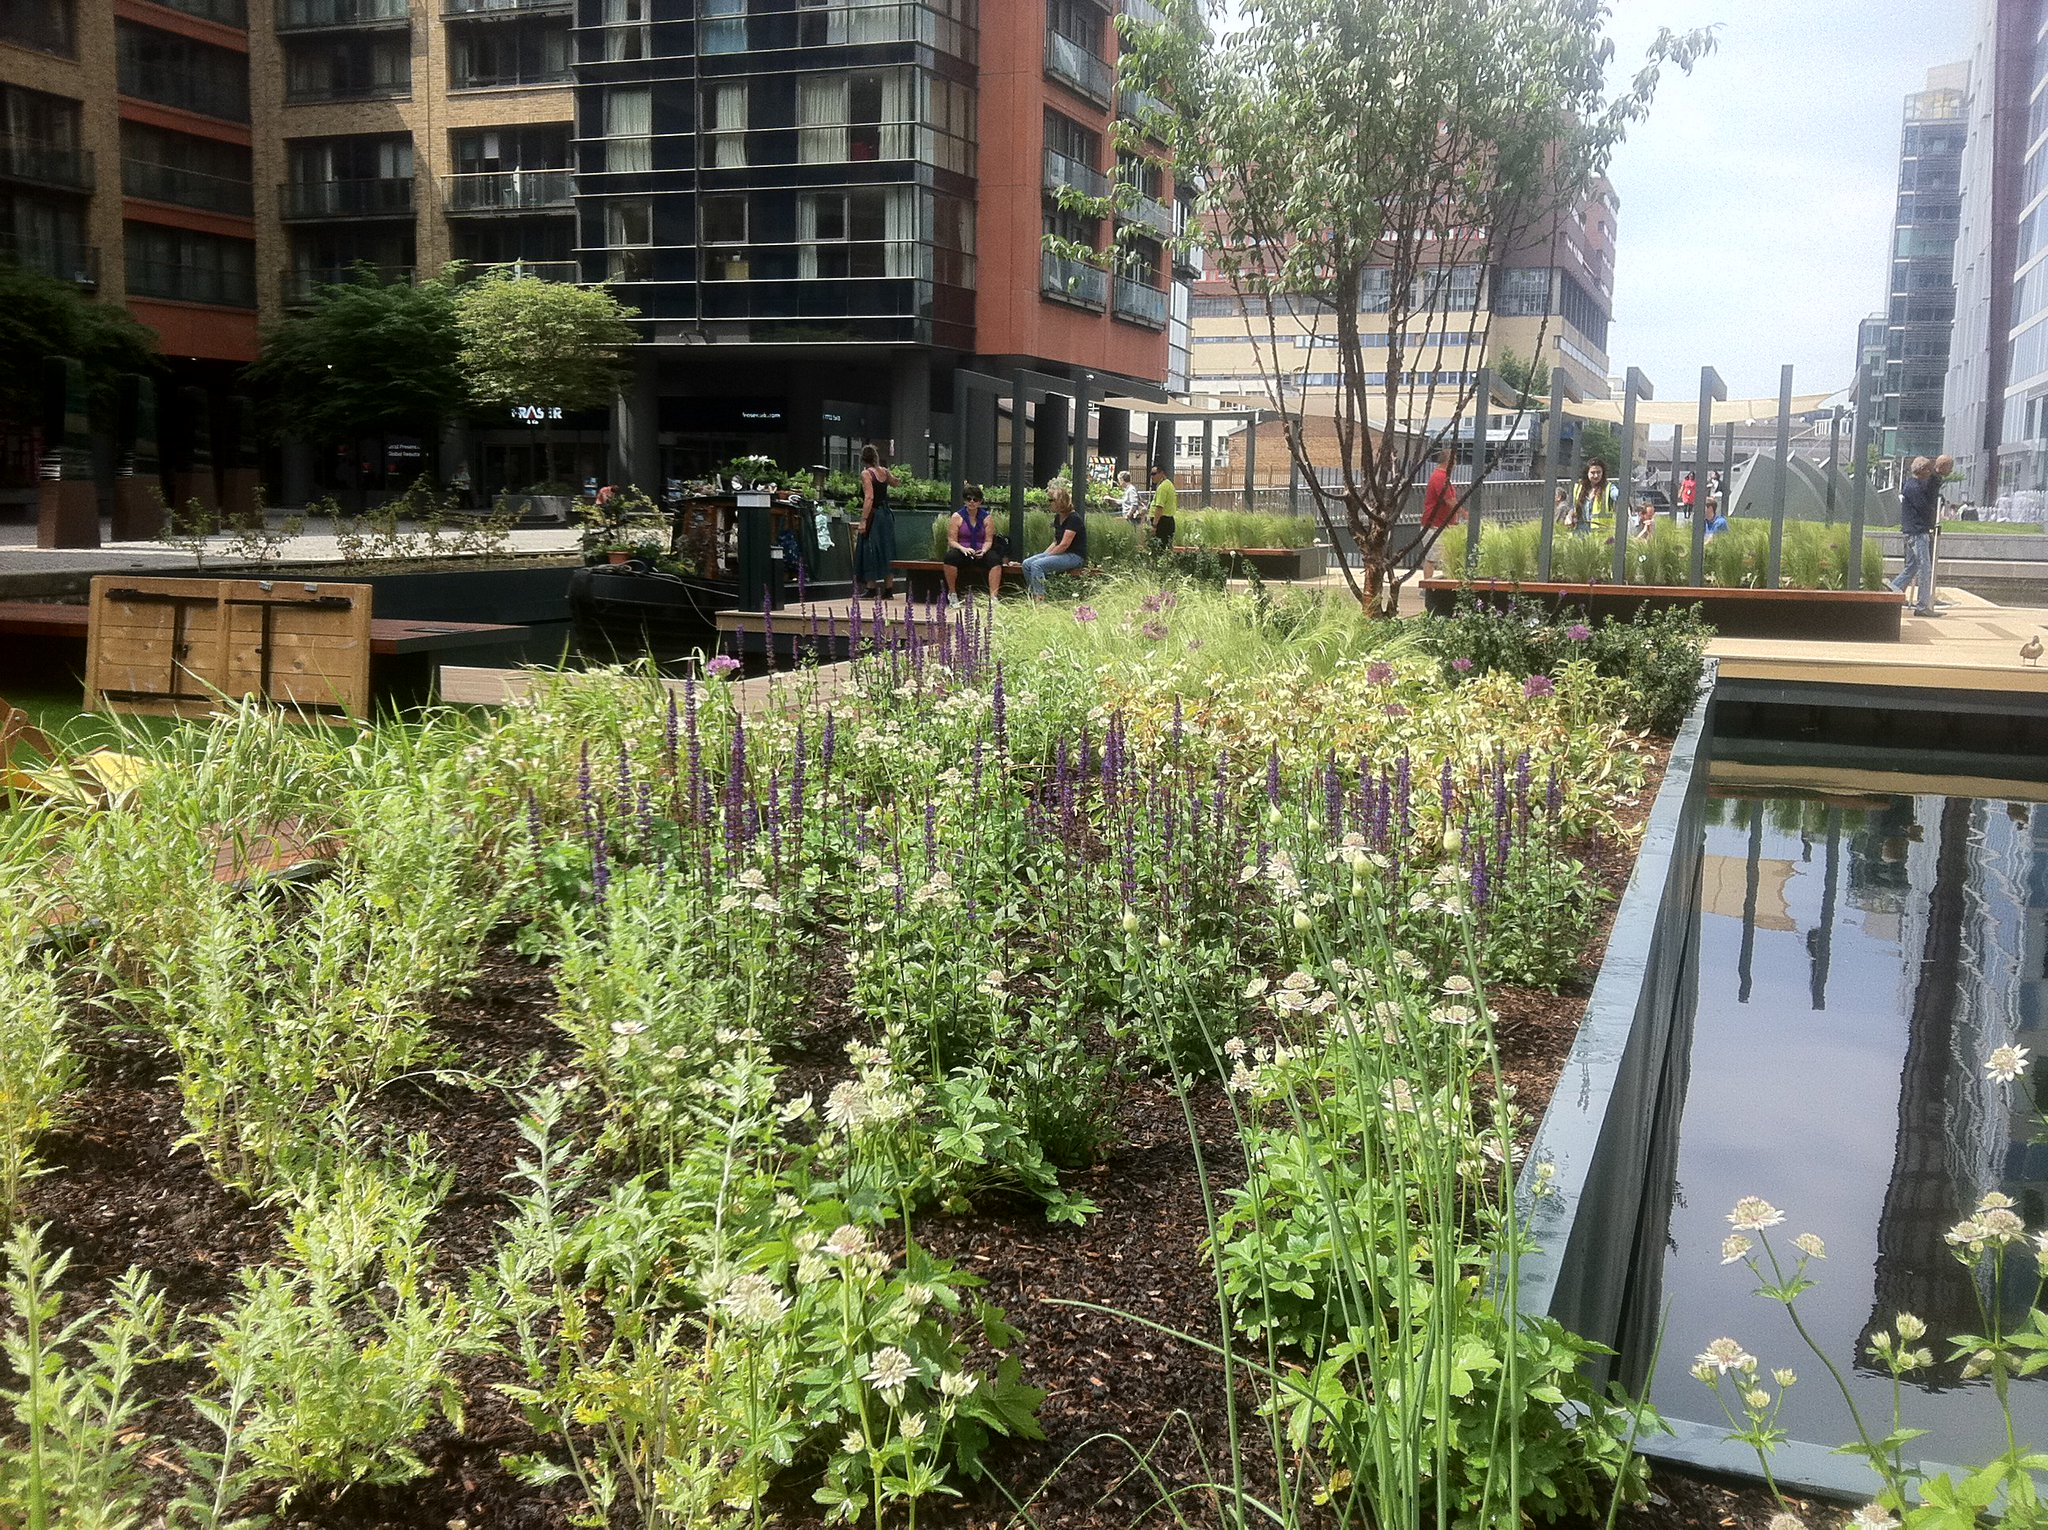 Day 2 #30DaysWild Went for a stroll to the floating pocket garden @30DaysWild @PaddingtonCen #local #chelseafringe https://t.co/4GMWjjwDYB